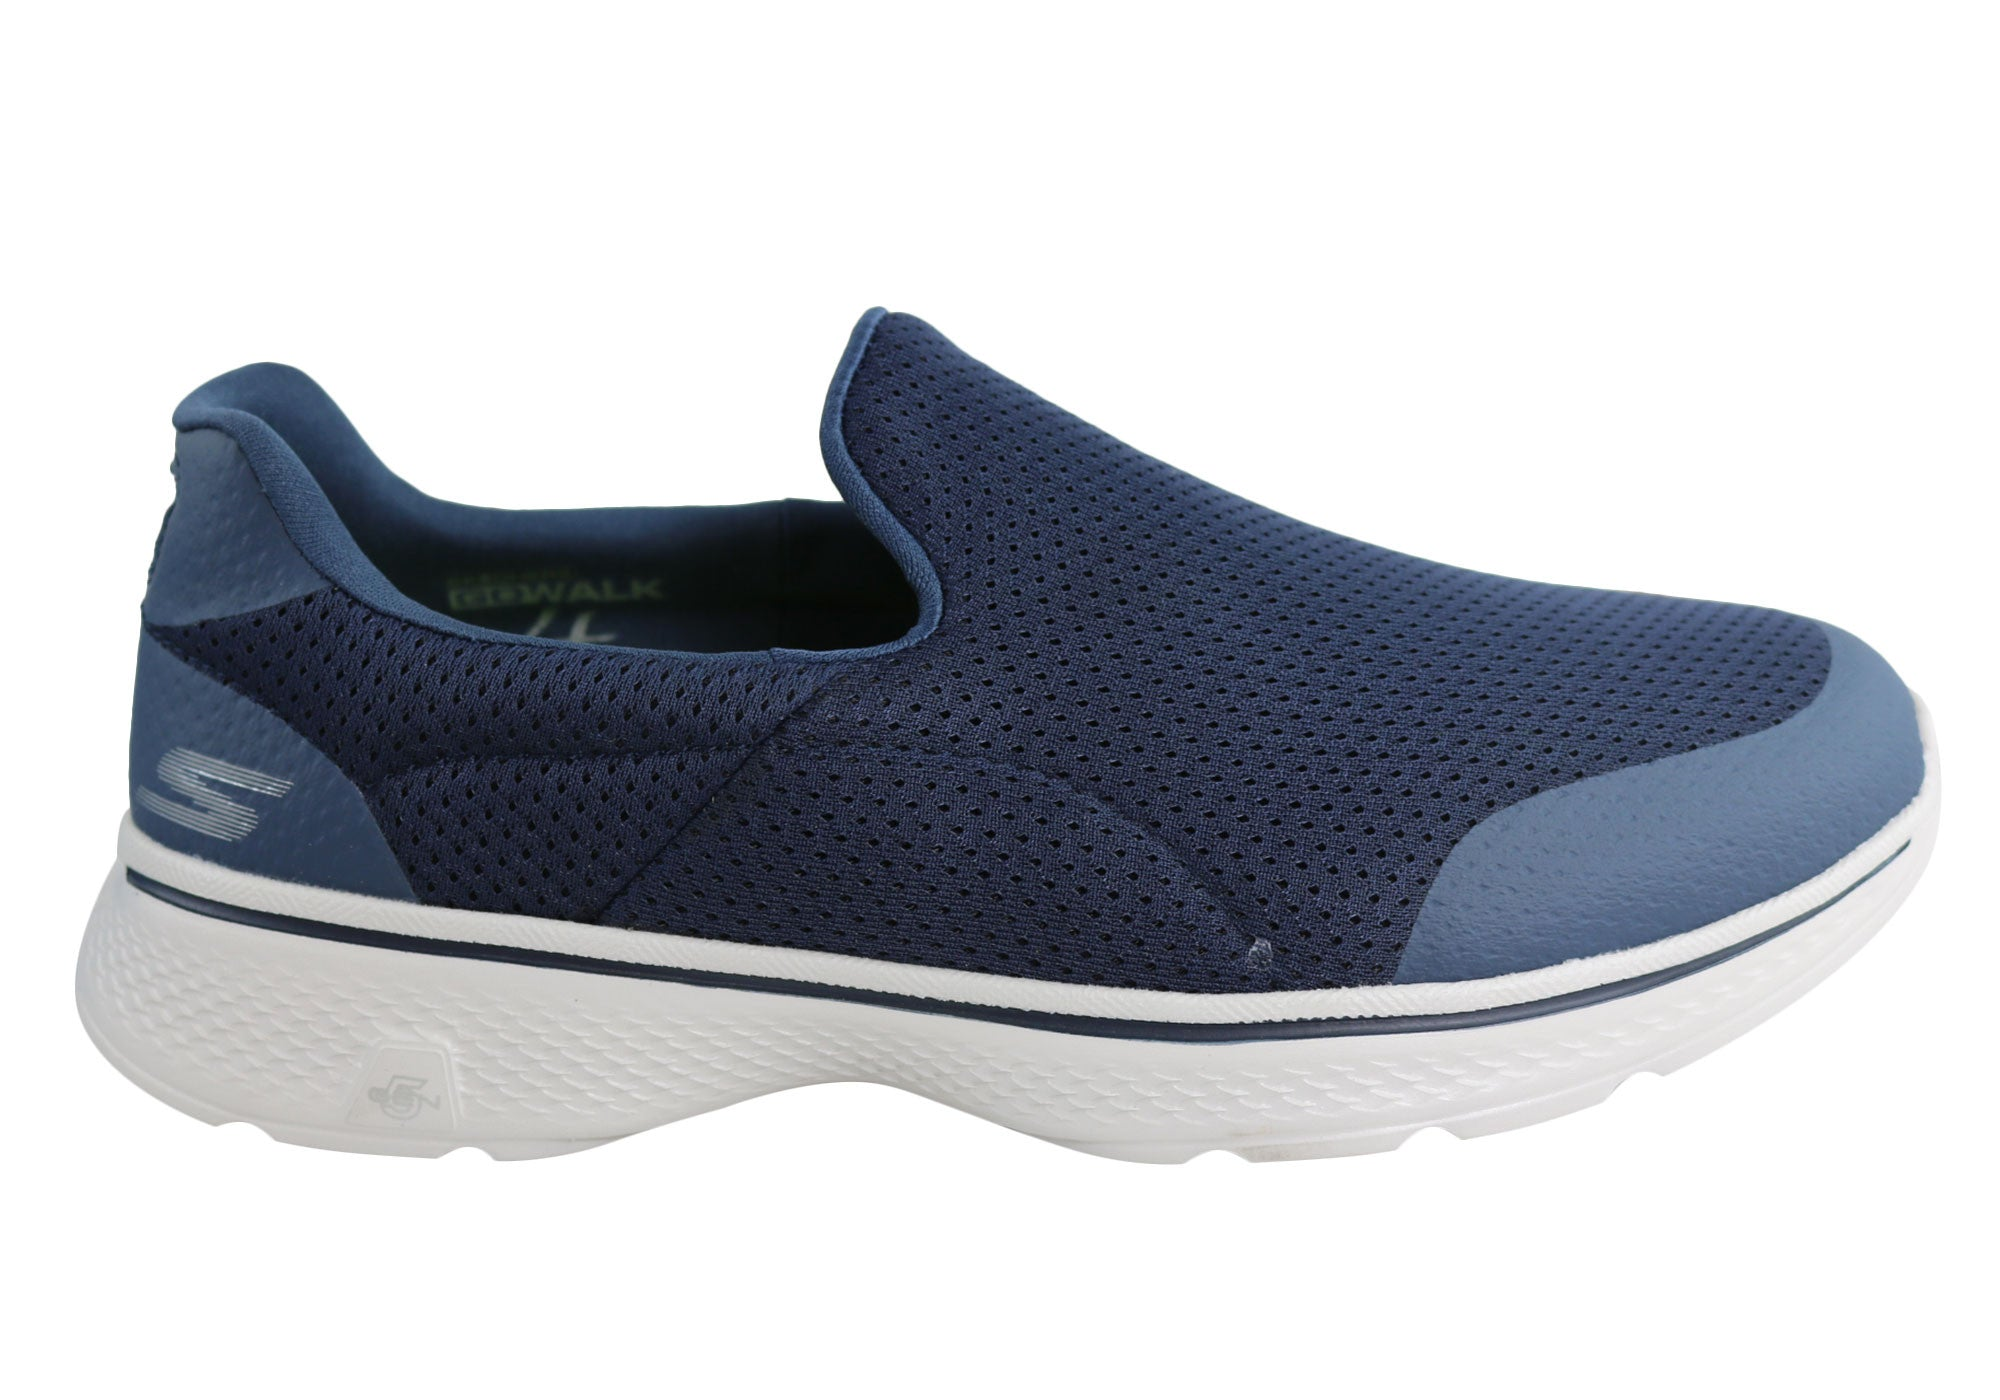 8bef4024d76b Home Skechers Go Walk 4 Incredible Mens Comfortable Casual Shoes. Navy  ...